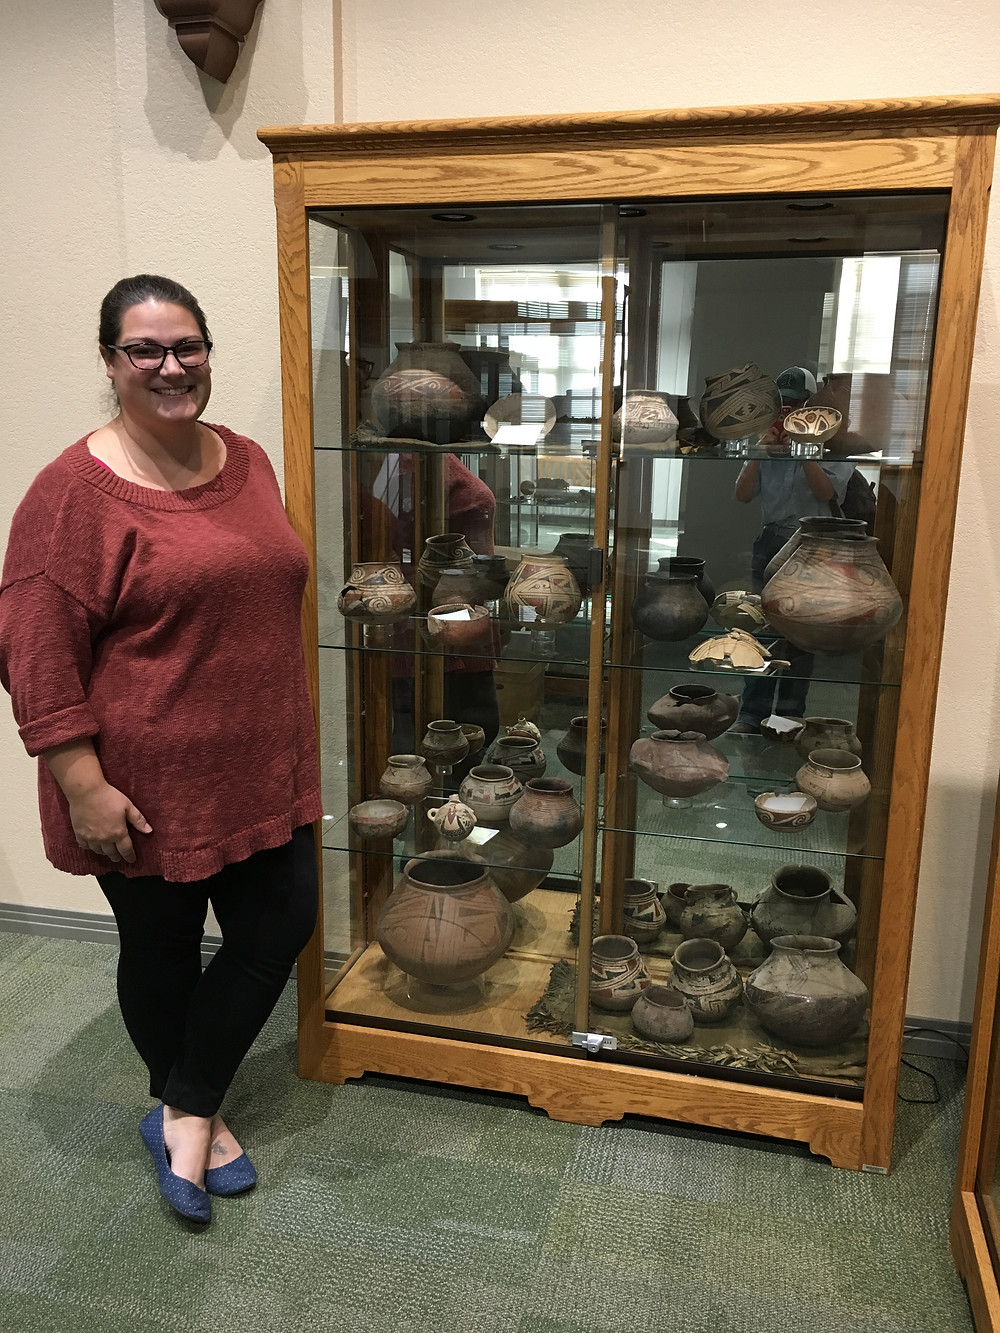 Jenna Domeischel, the Curator of the Blackwater Draw Museum, standing in front of her favorite case of pottery displayed in the museum. Photo by Jena Slater